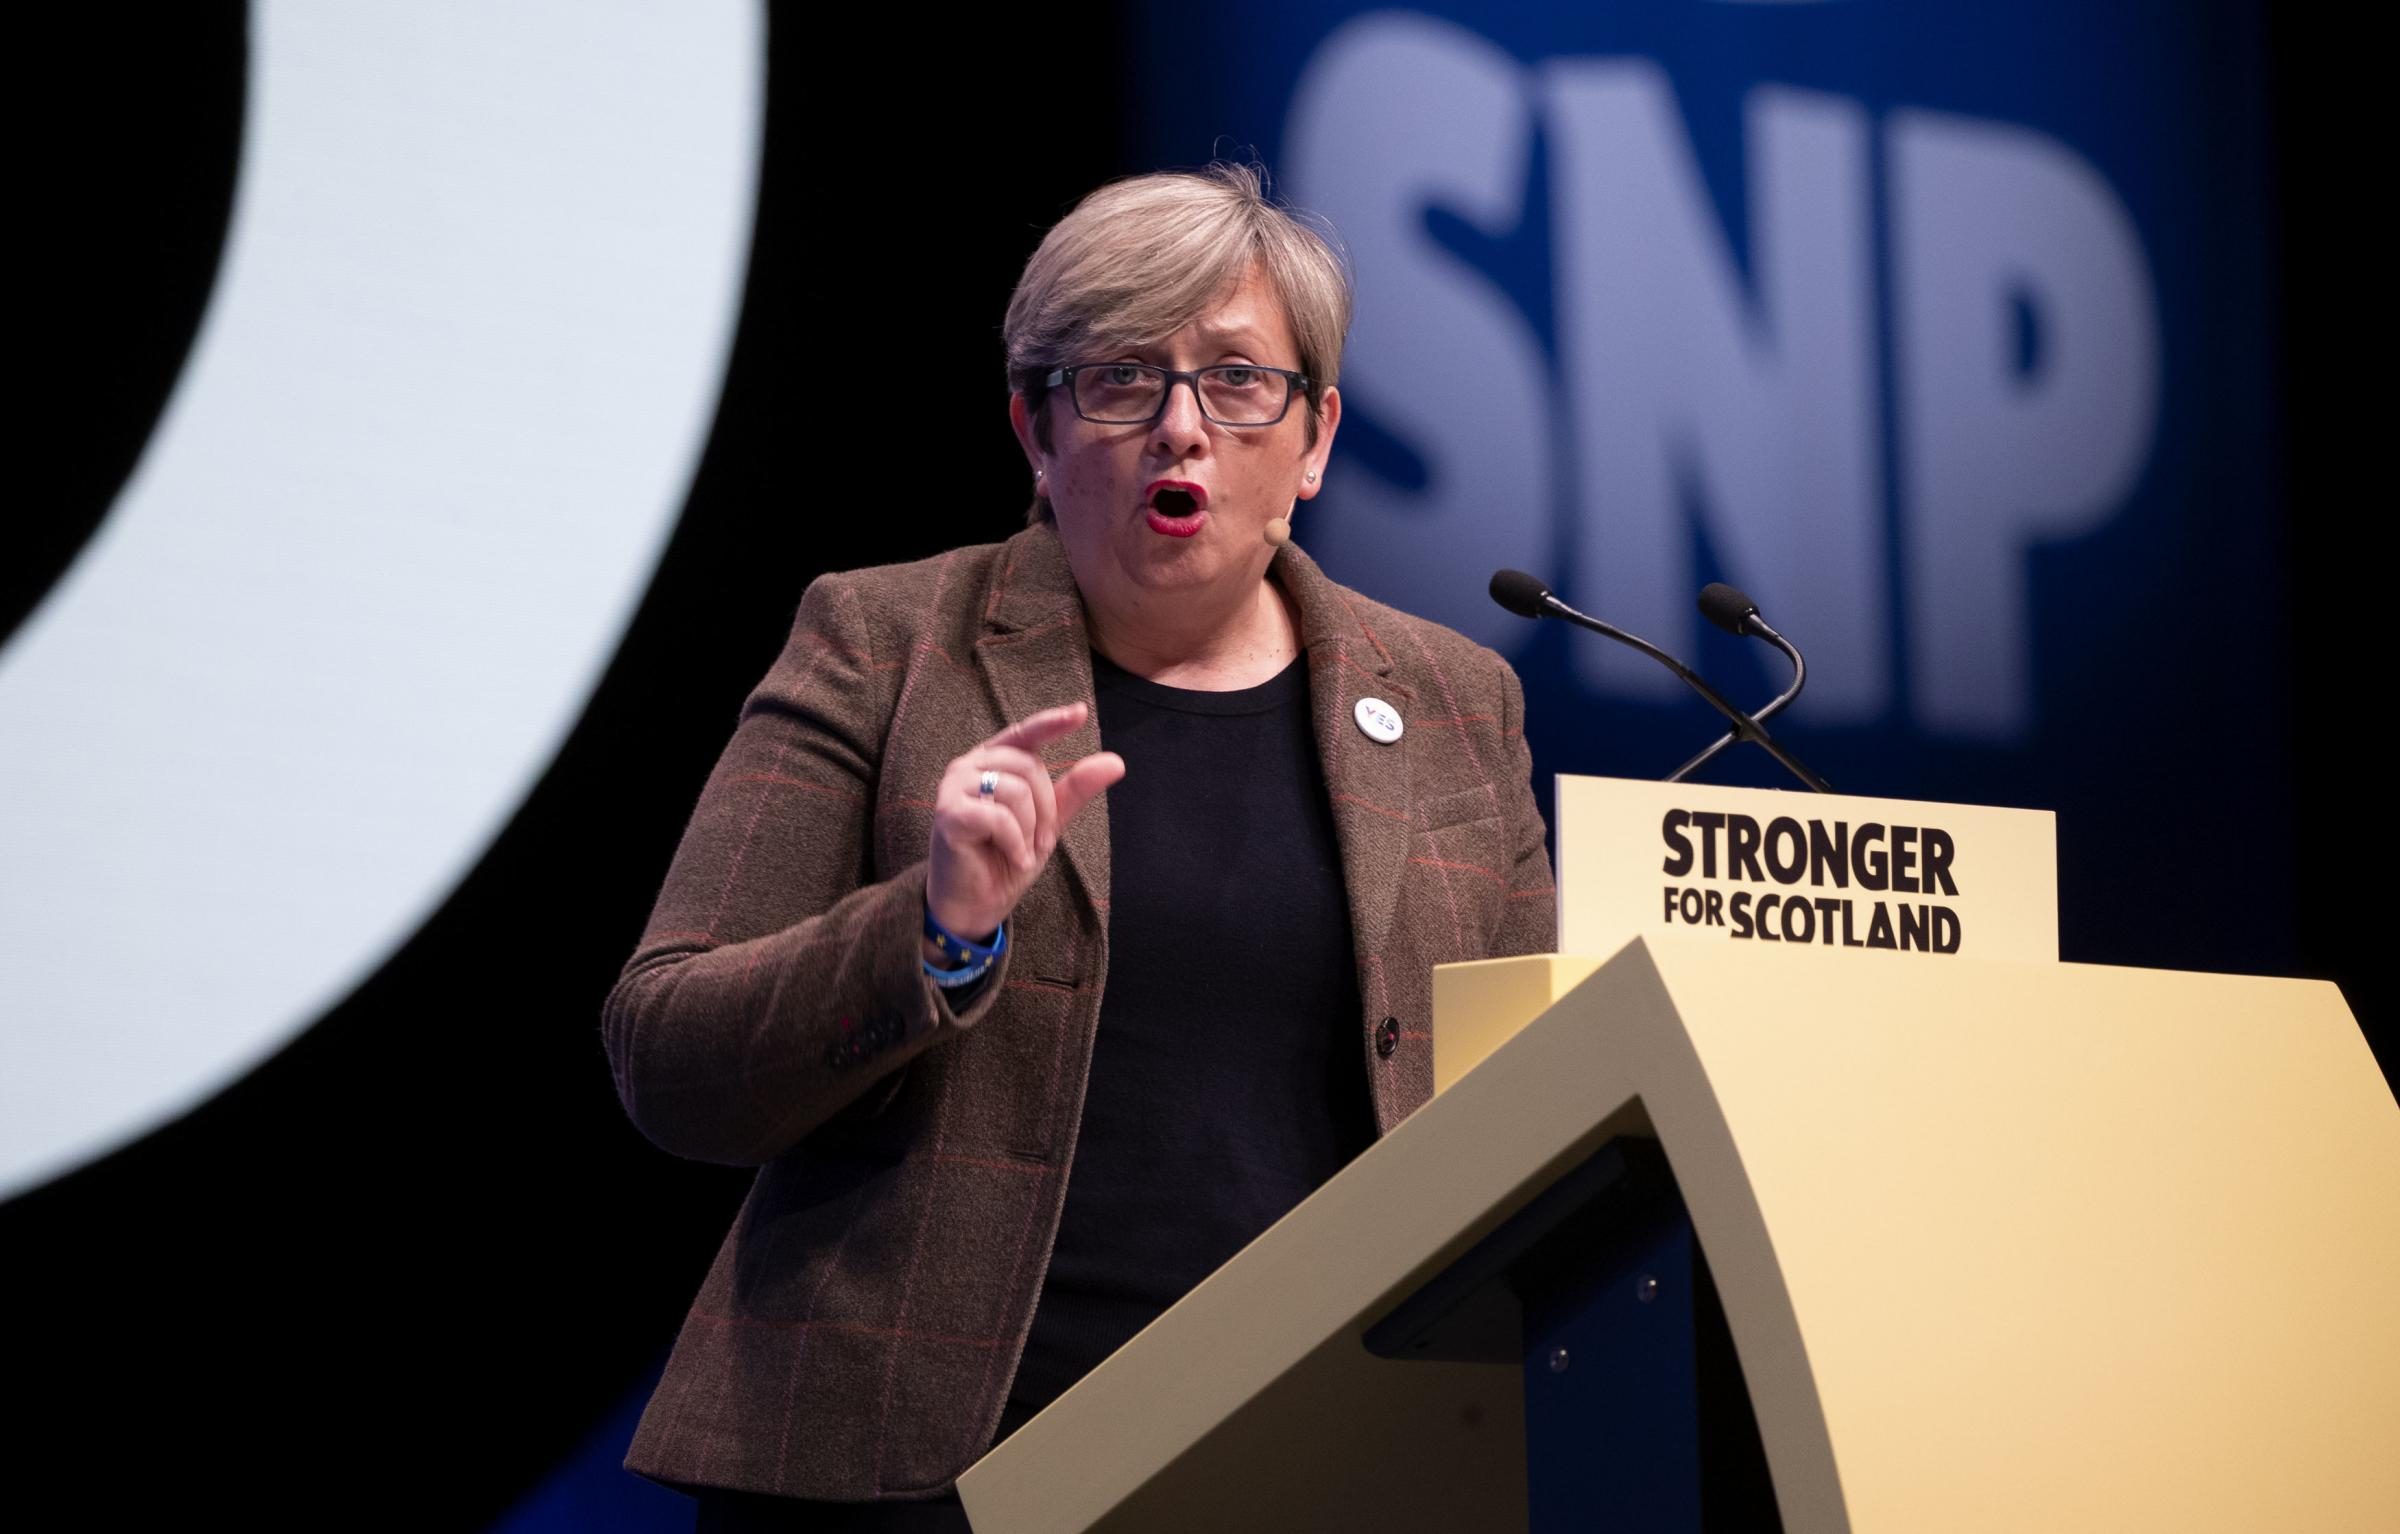 Kevin McKenna:The SNP is now a major obstacle to independence